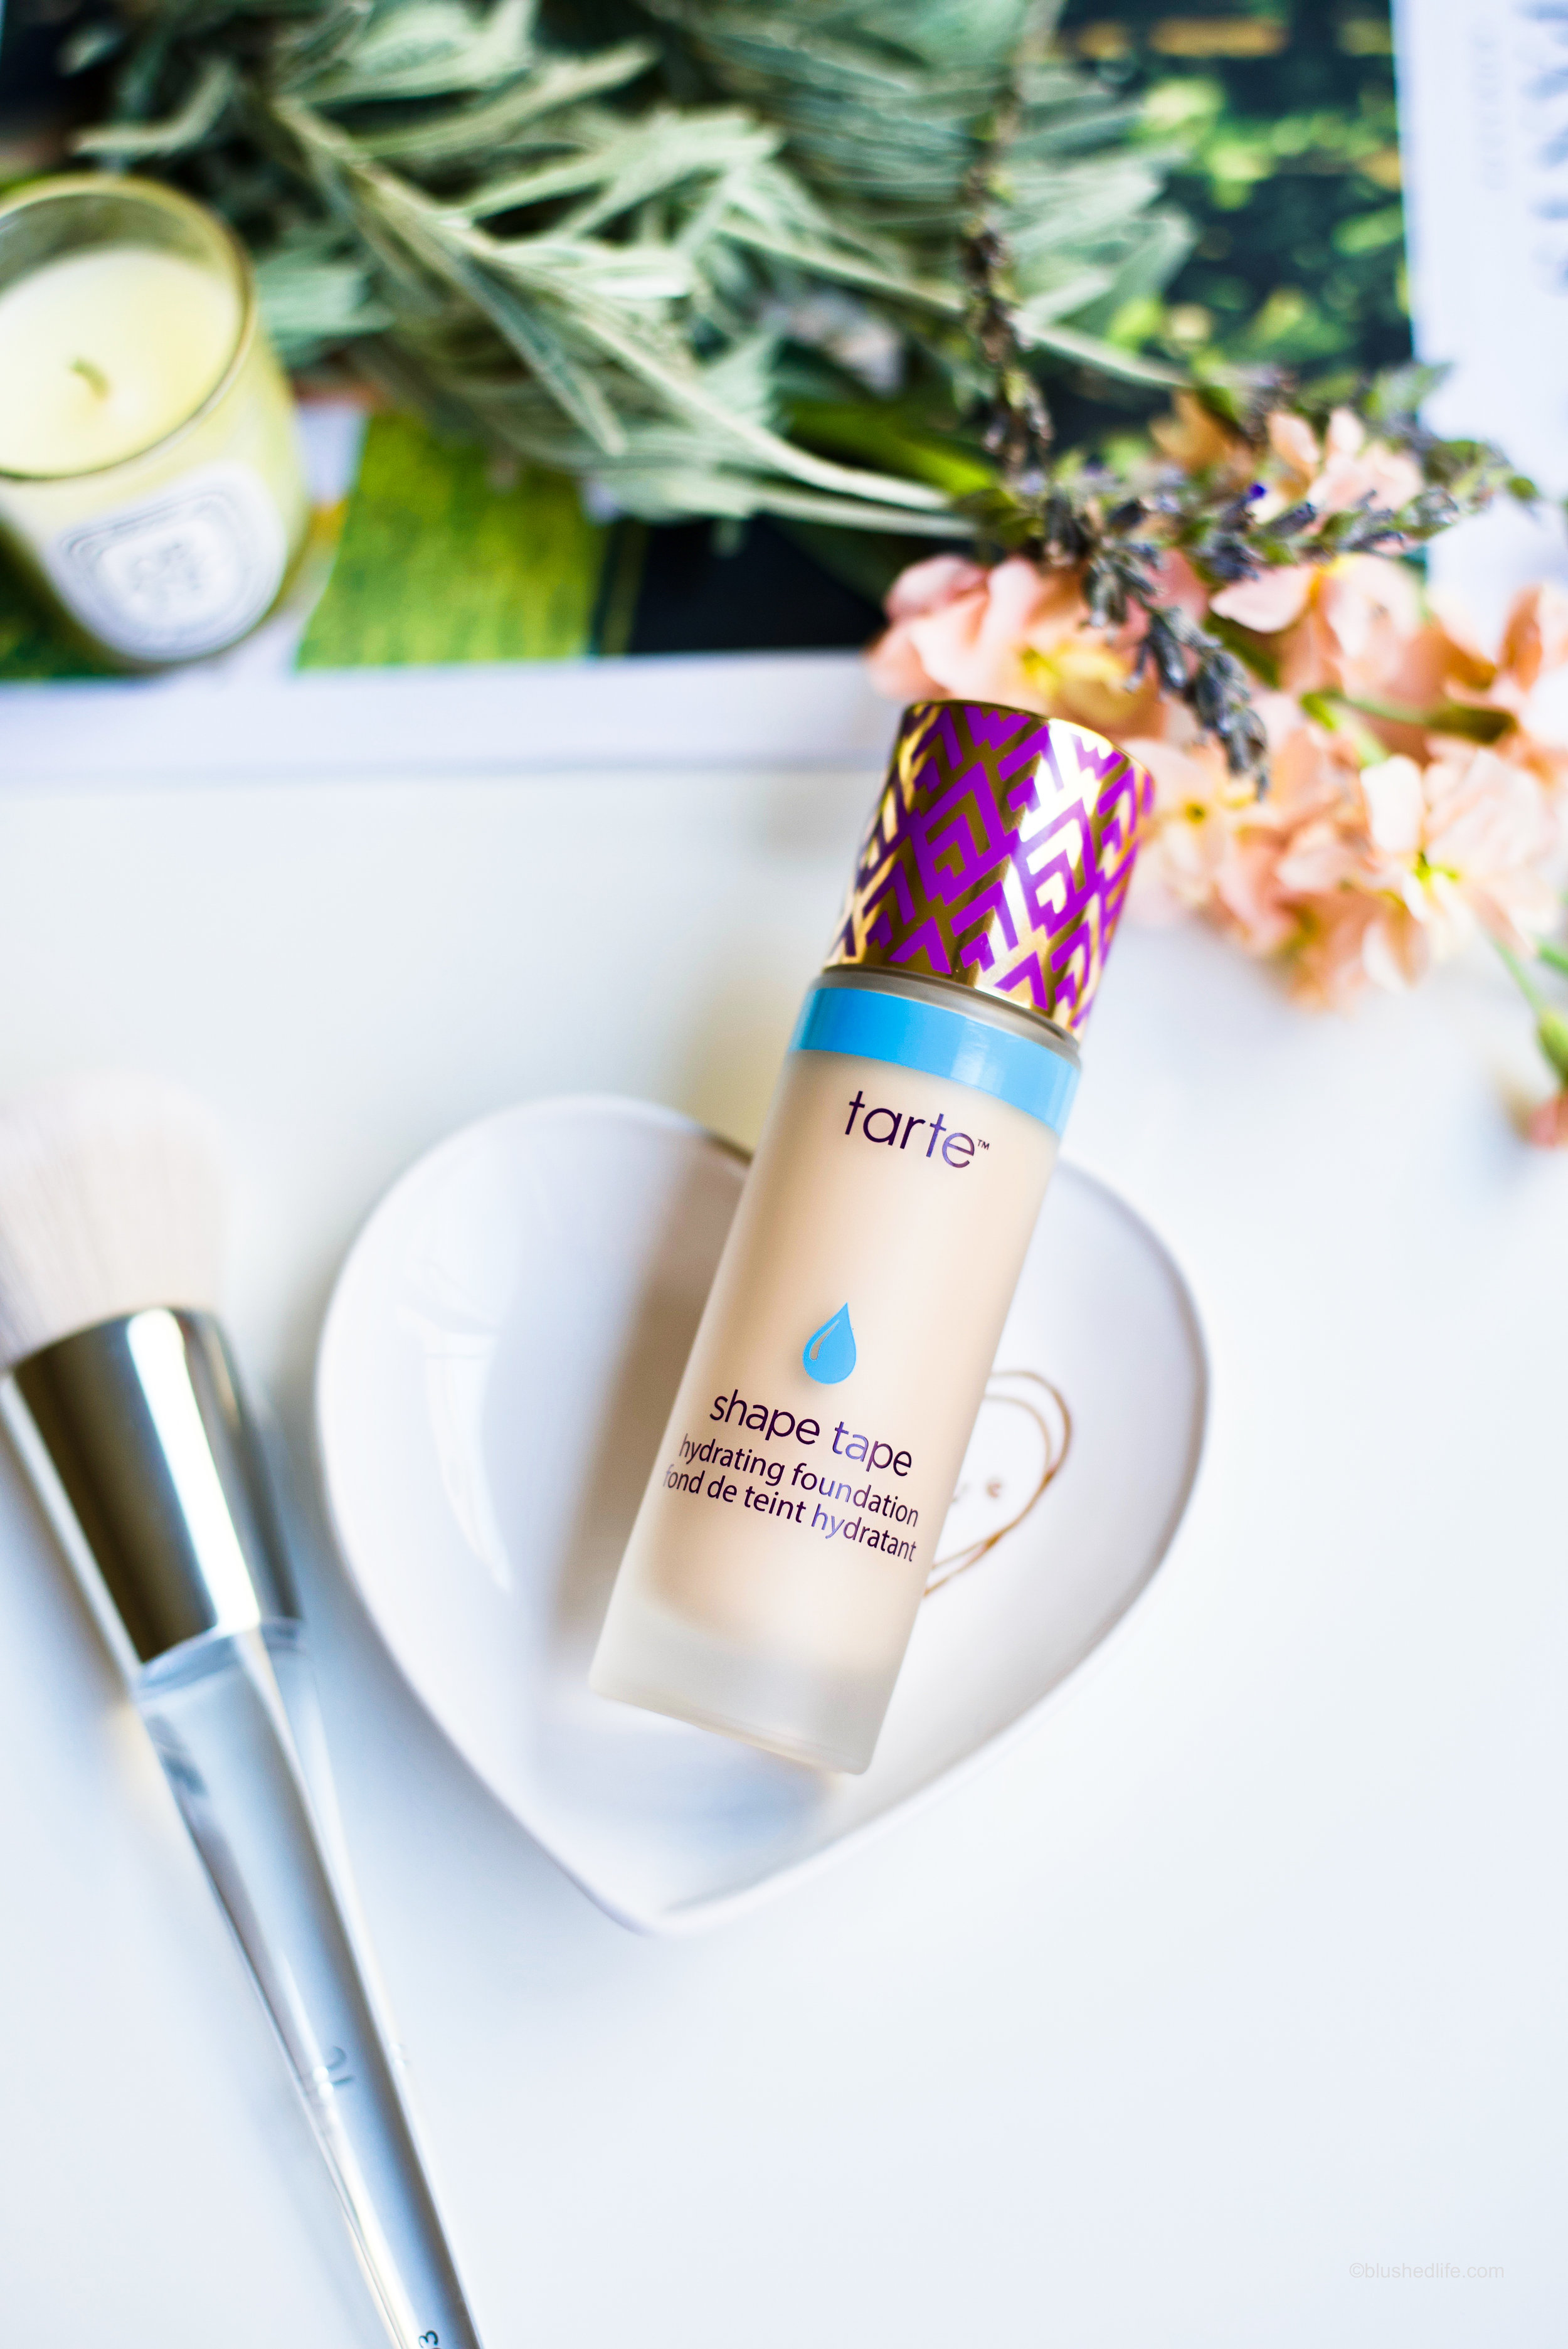 Tarte Shape Tape Hydrating Foundation Review Asian Skin_DSC_3596-2.jpg